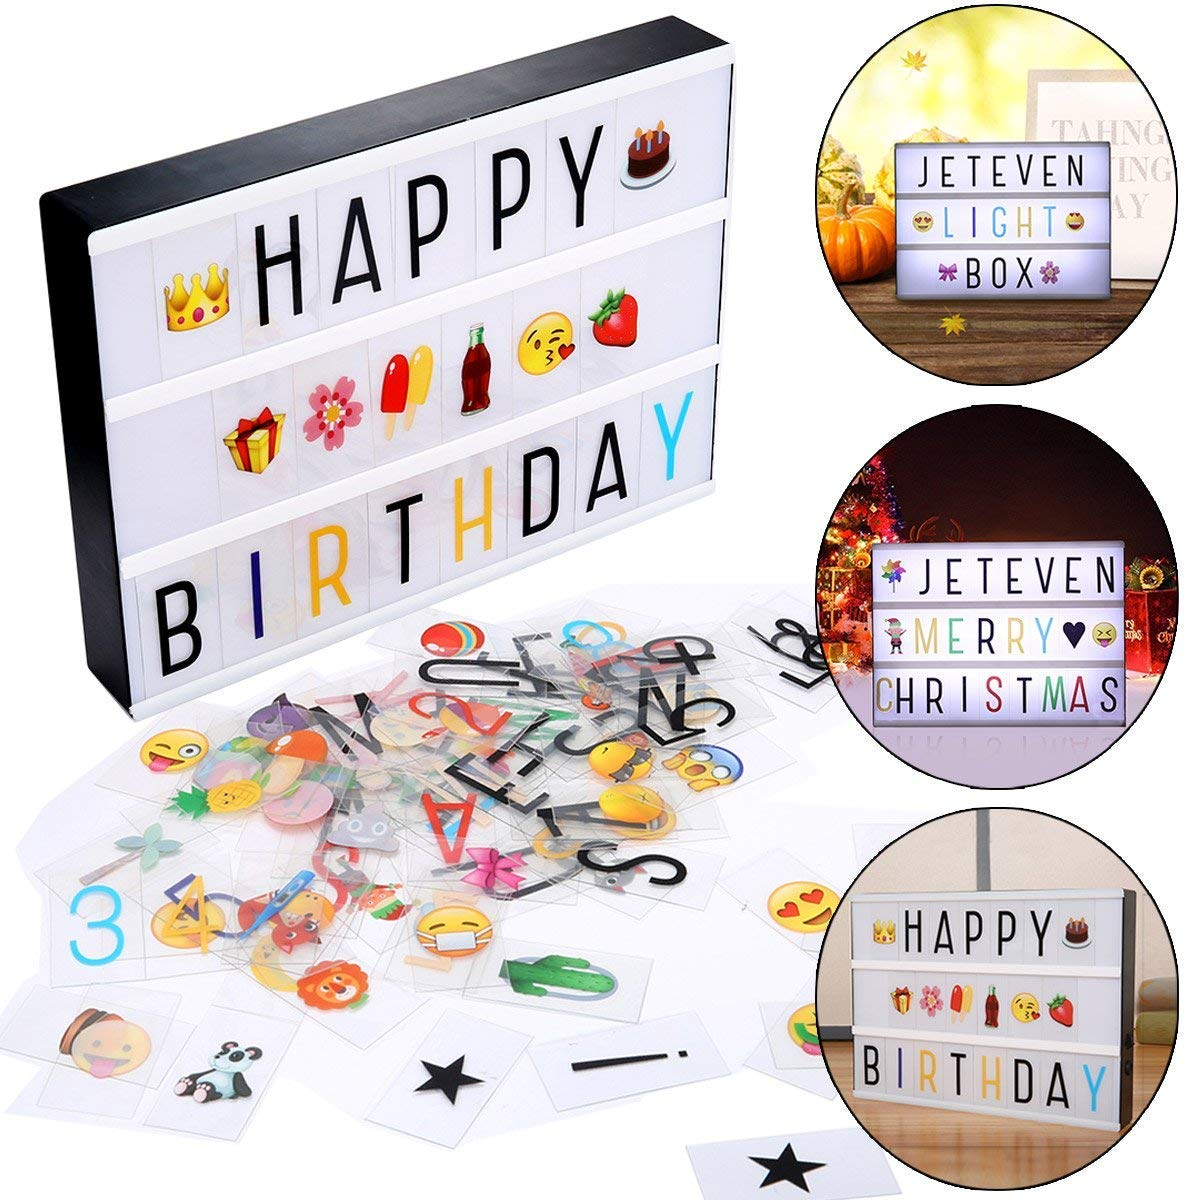 Jeteven Cinema LED Letter Light Box with 210 Letters, Emoji & Numbers, A4 Size Decorative Signs Year Valentine\'s Day Birthday Party, USB/Battery Powered